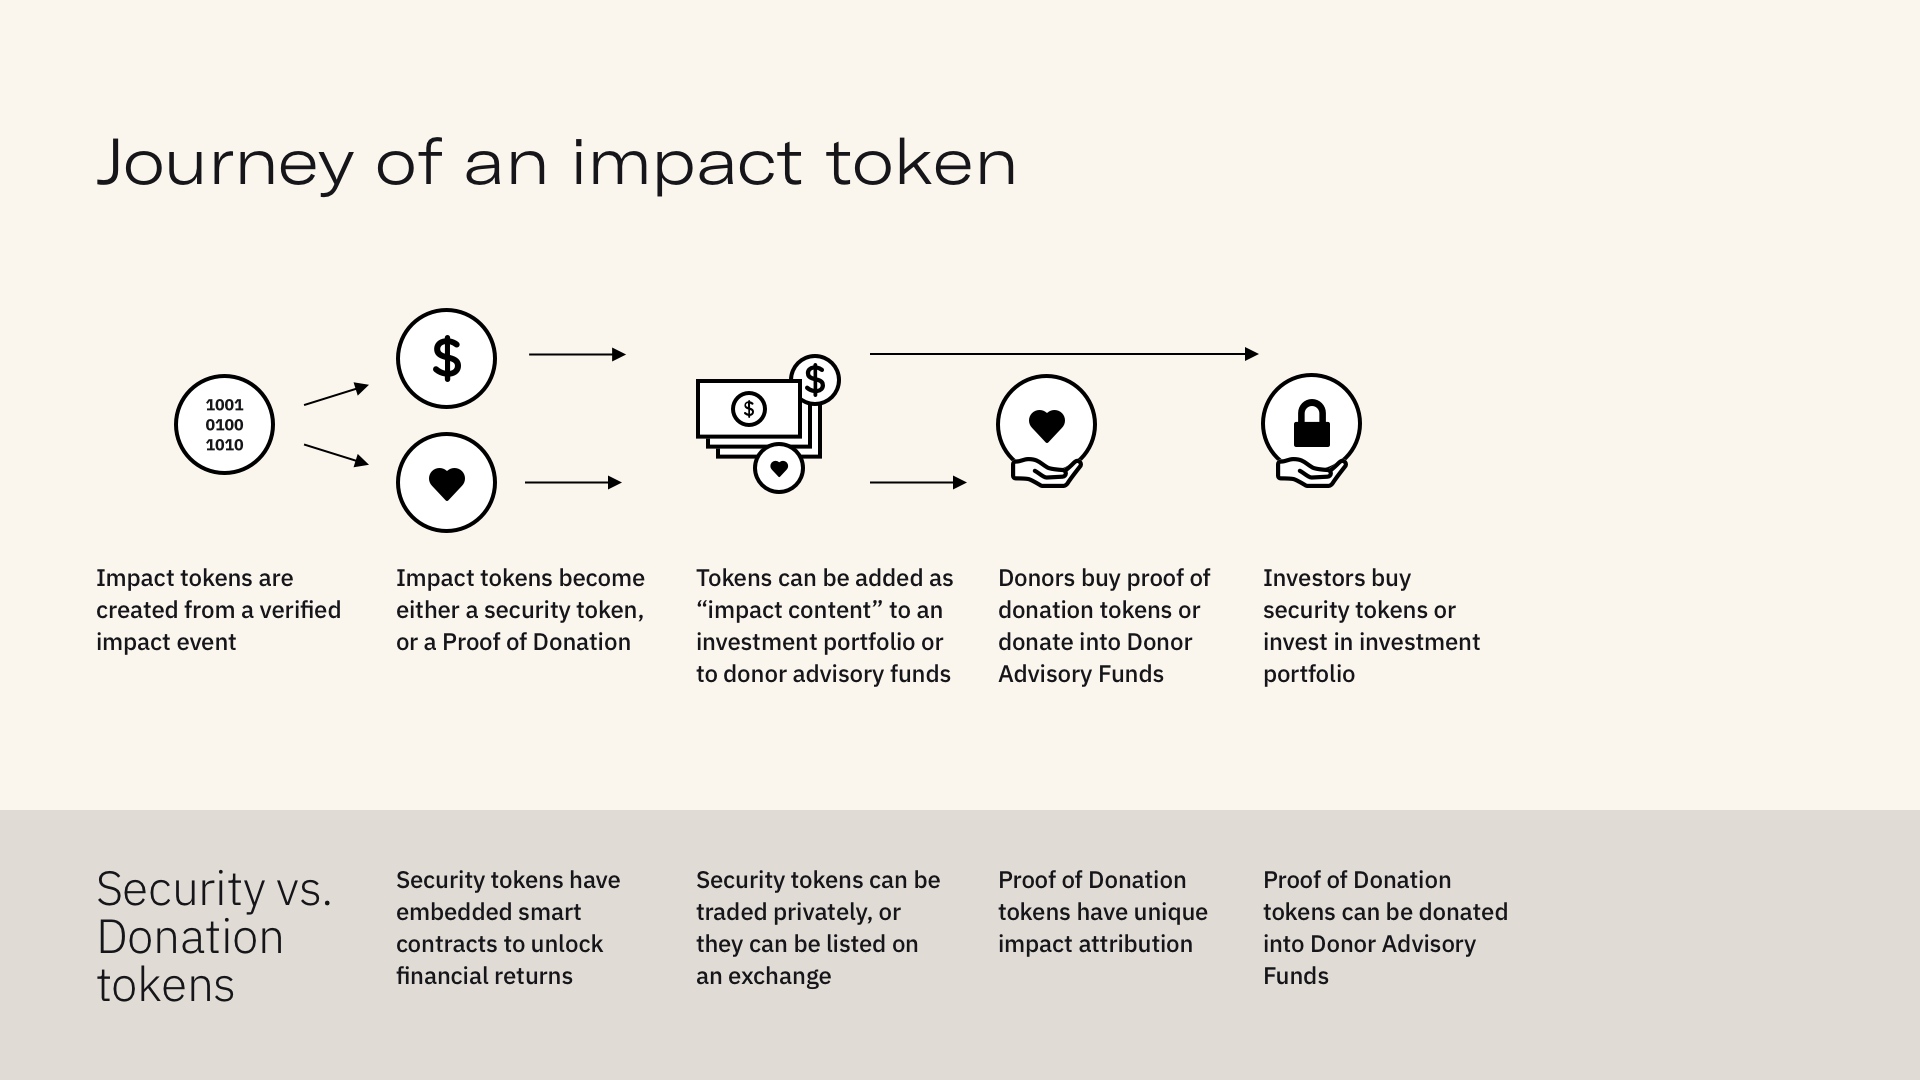 Journey of an impact